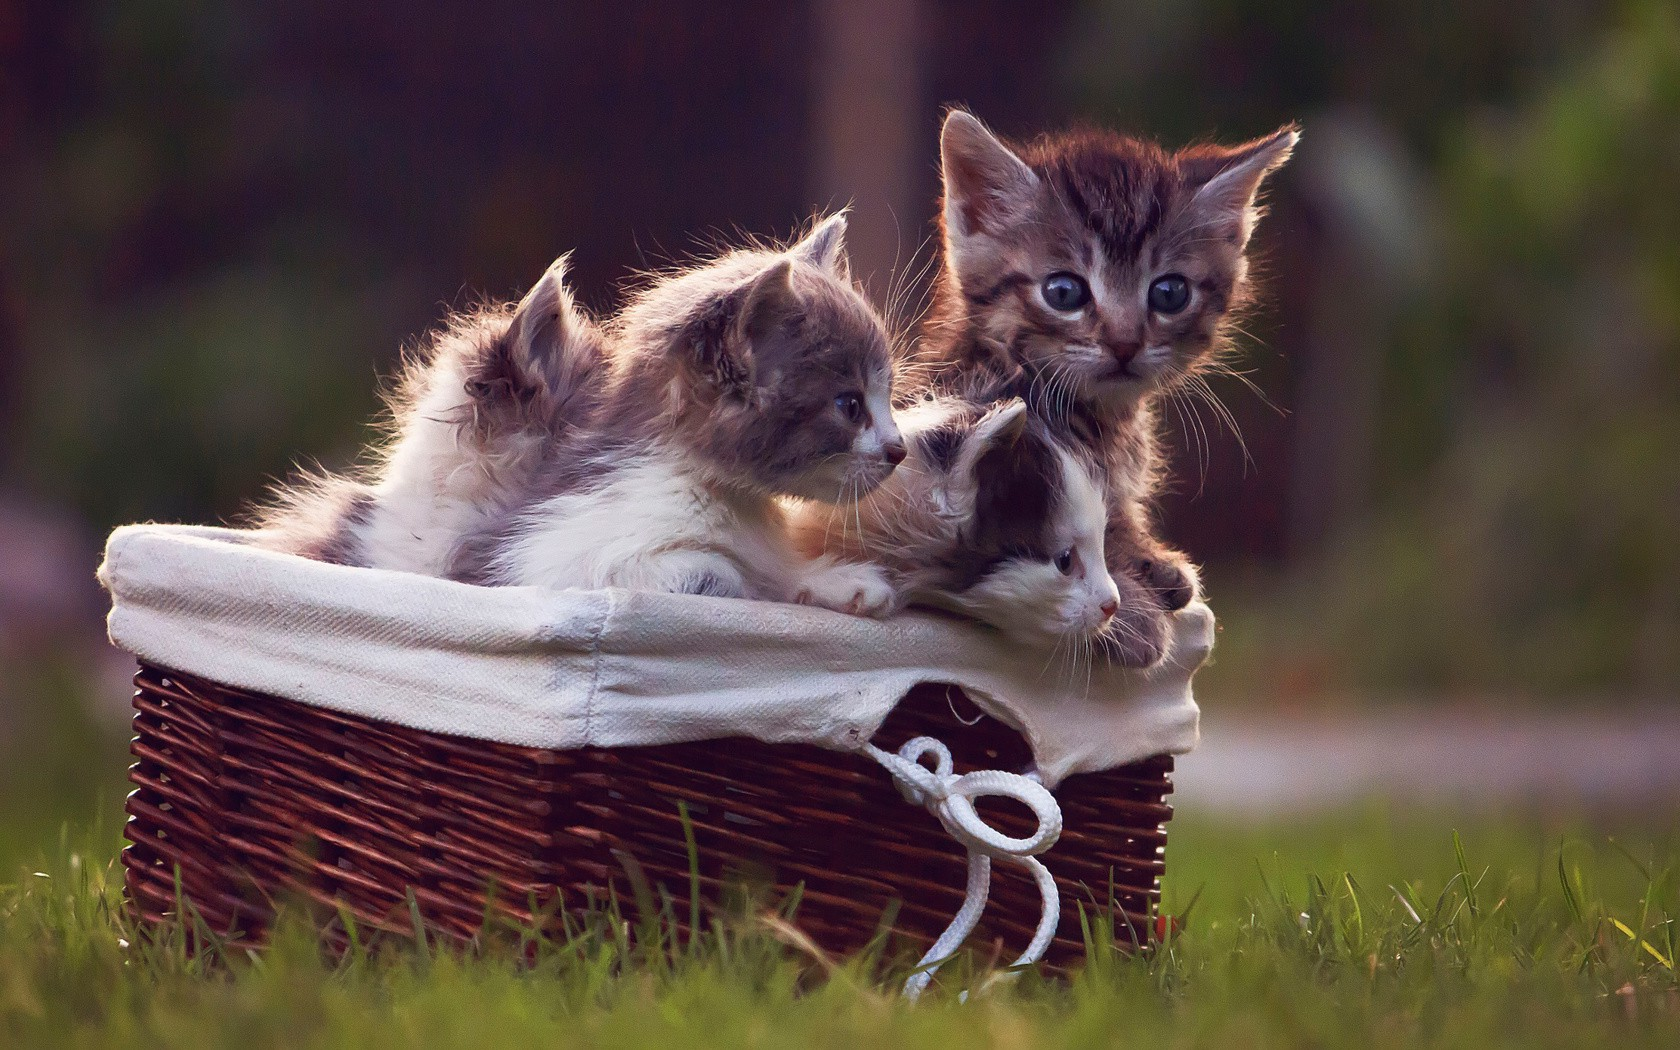 New 3d Desktop Wallpaper Hd 16 Animals Cat Kittens Baskets Grass Wallpapers Hd